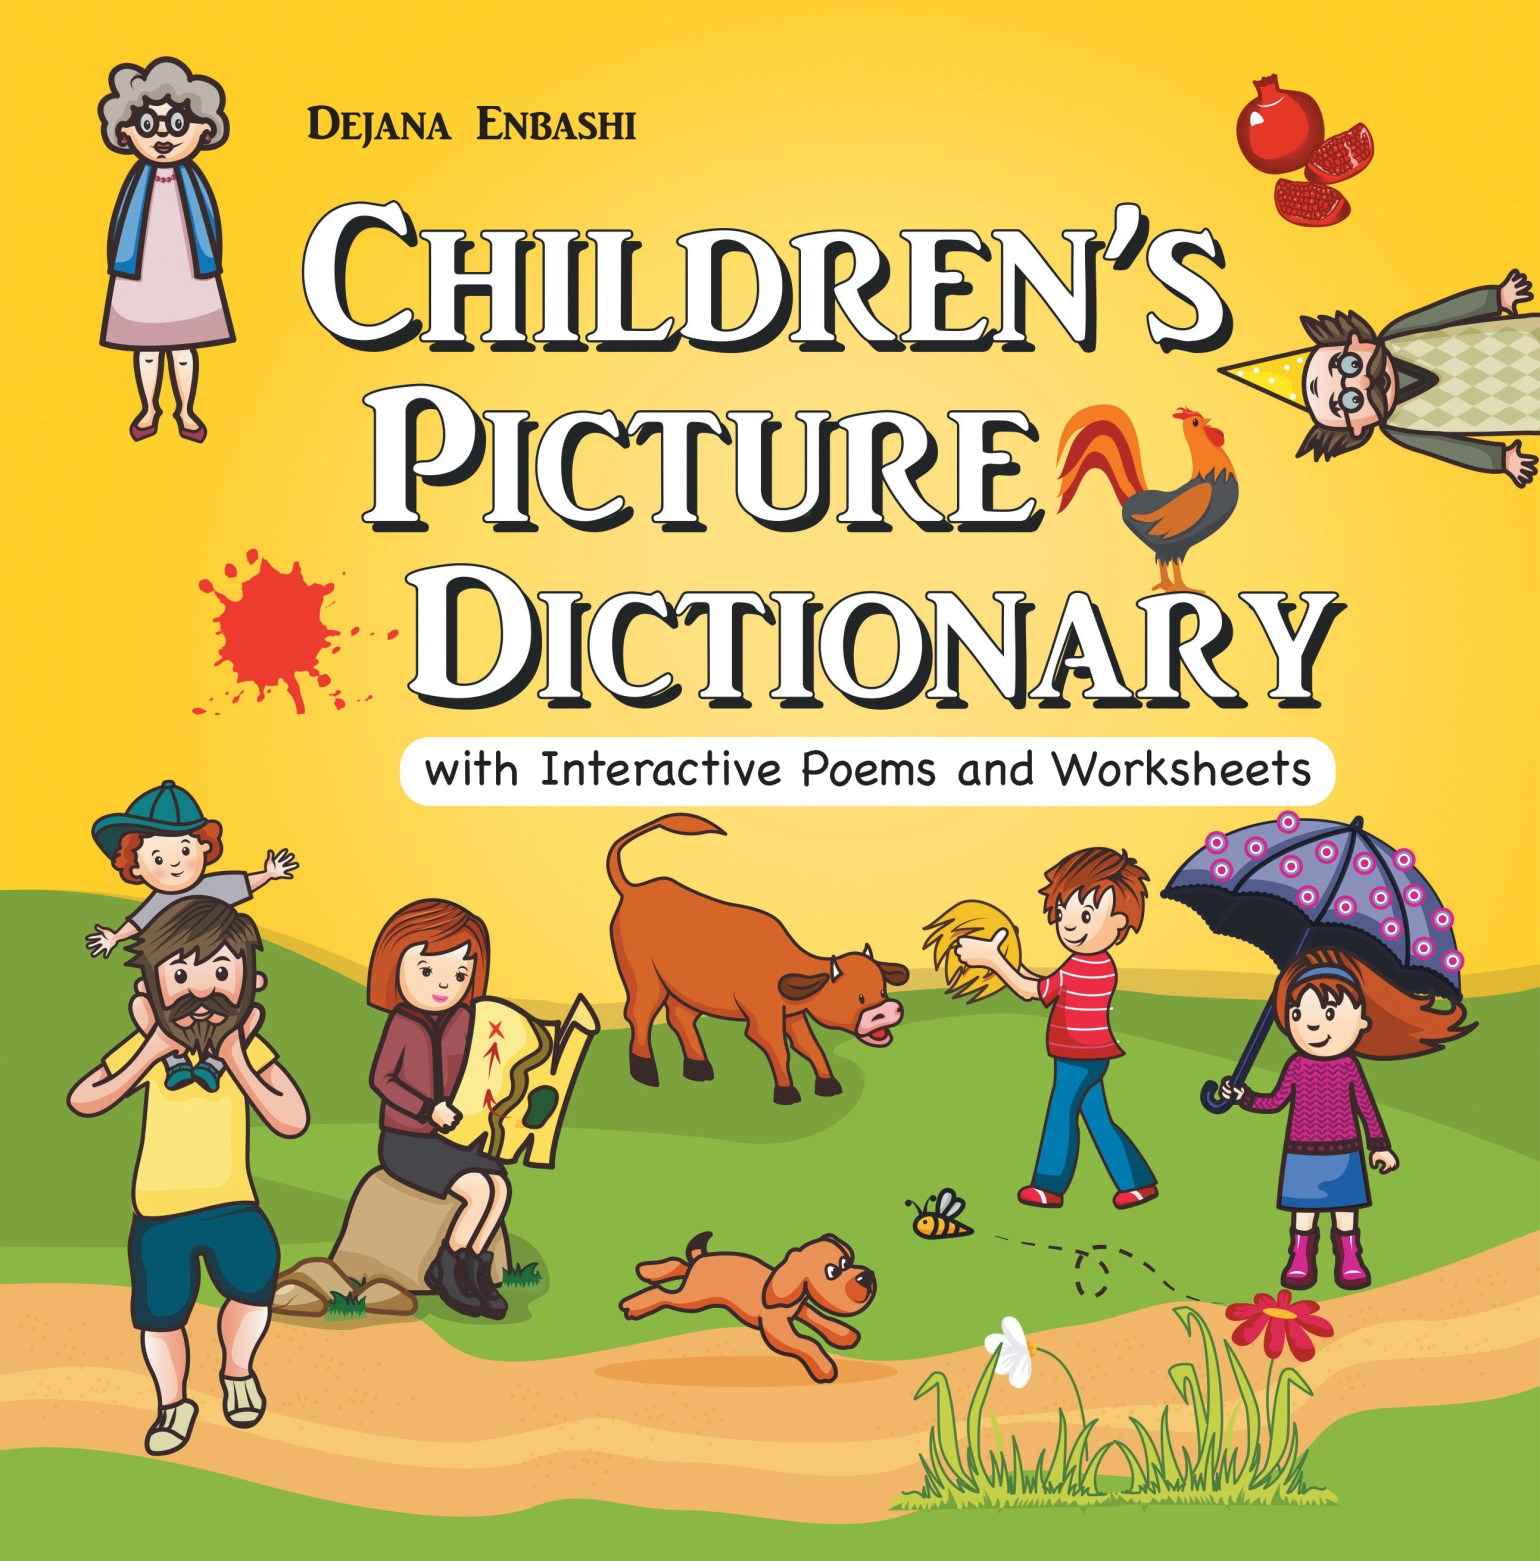 Children's Picture Dictionary with Interactive Poems and Worksheets (Hardcover) 978-1642544558